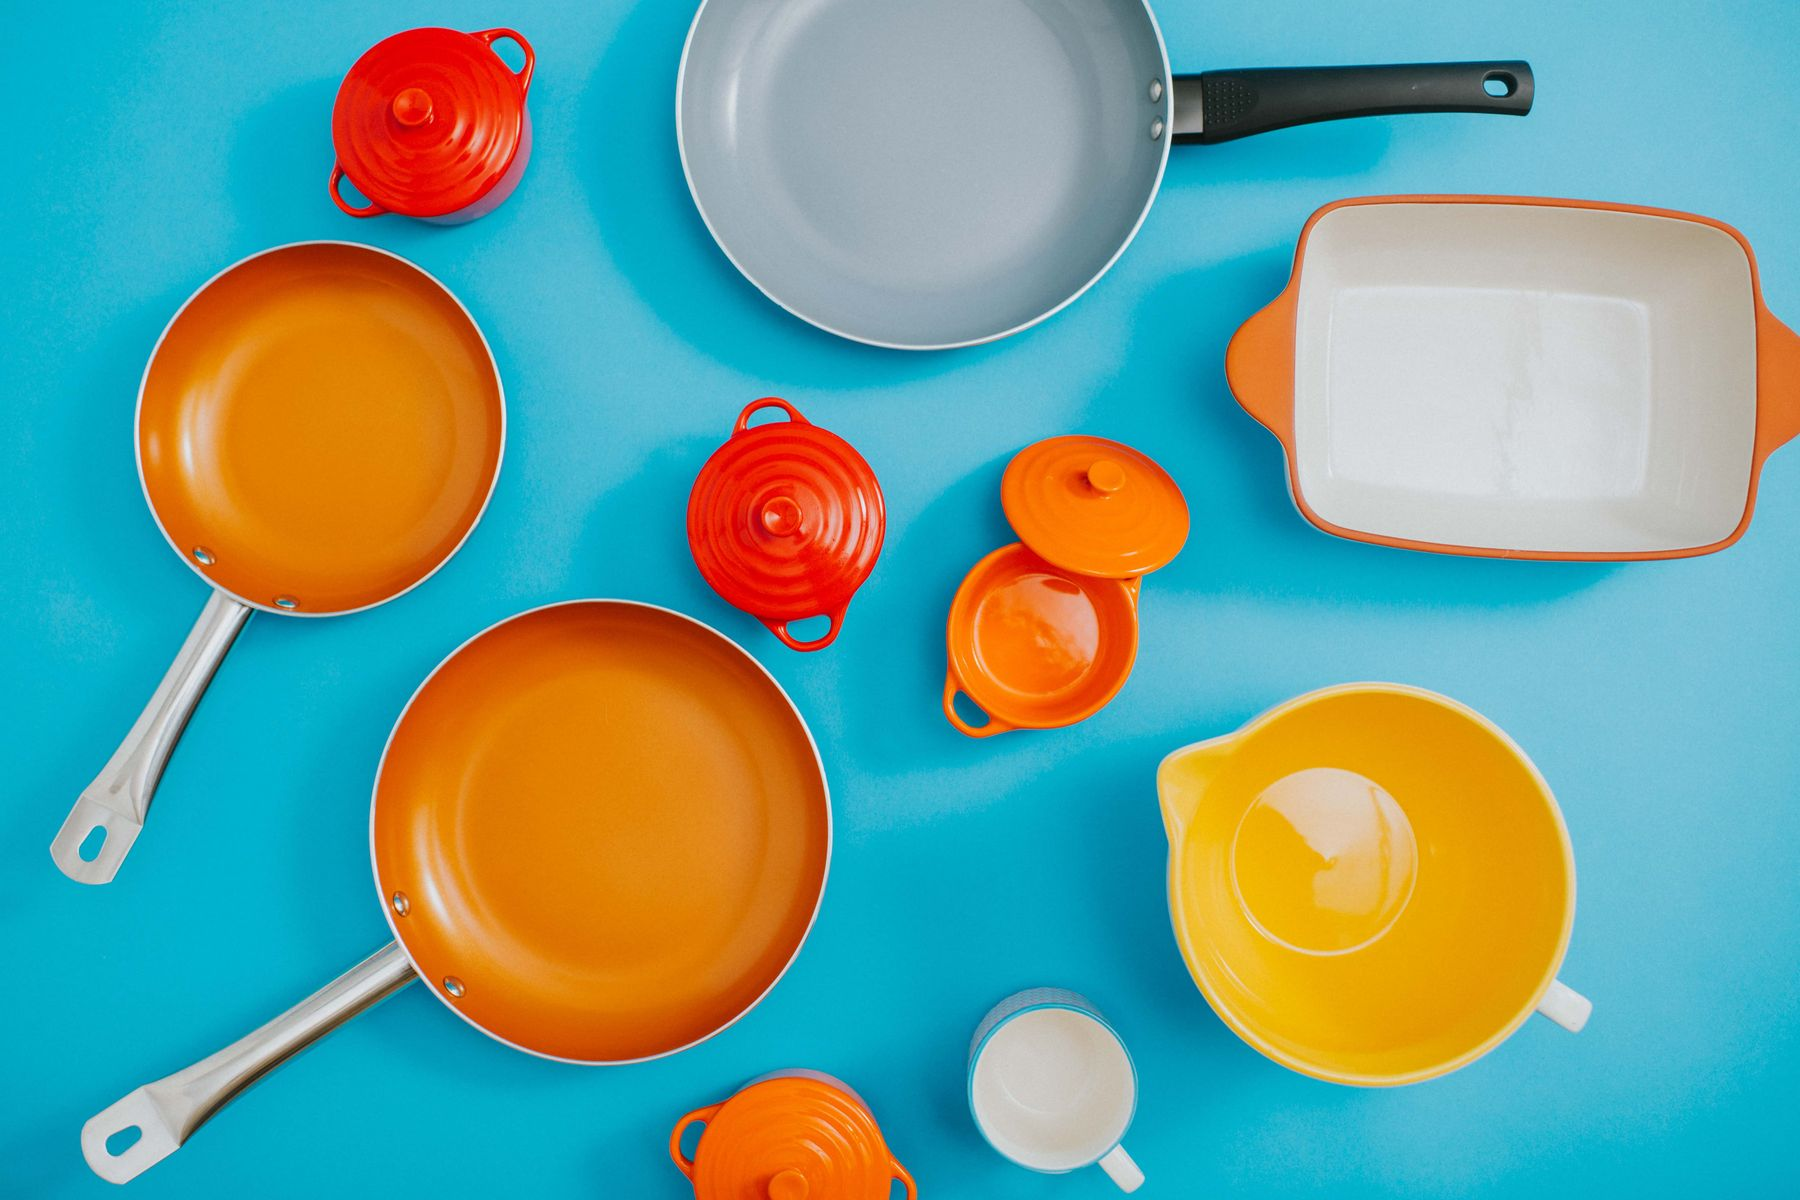 Bright pots and pans on blue table